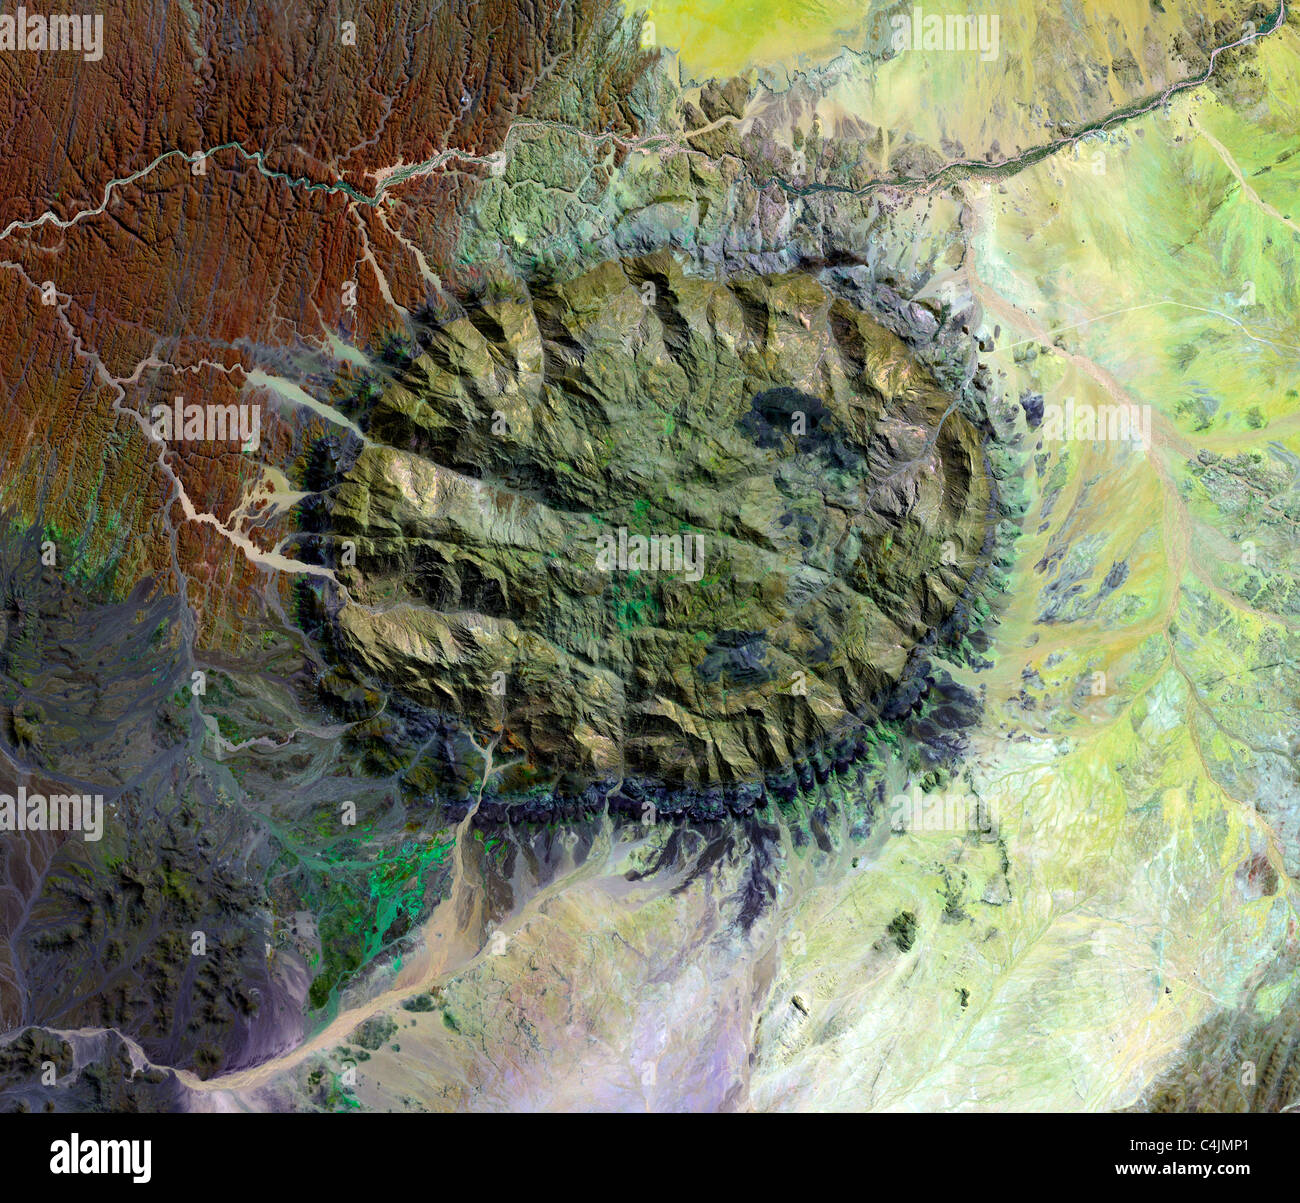 the Brandberg Massif is an exhumed granite intrusion as from space in this NASA satellite image. - Stock Image